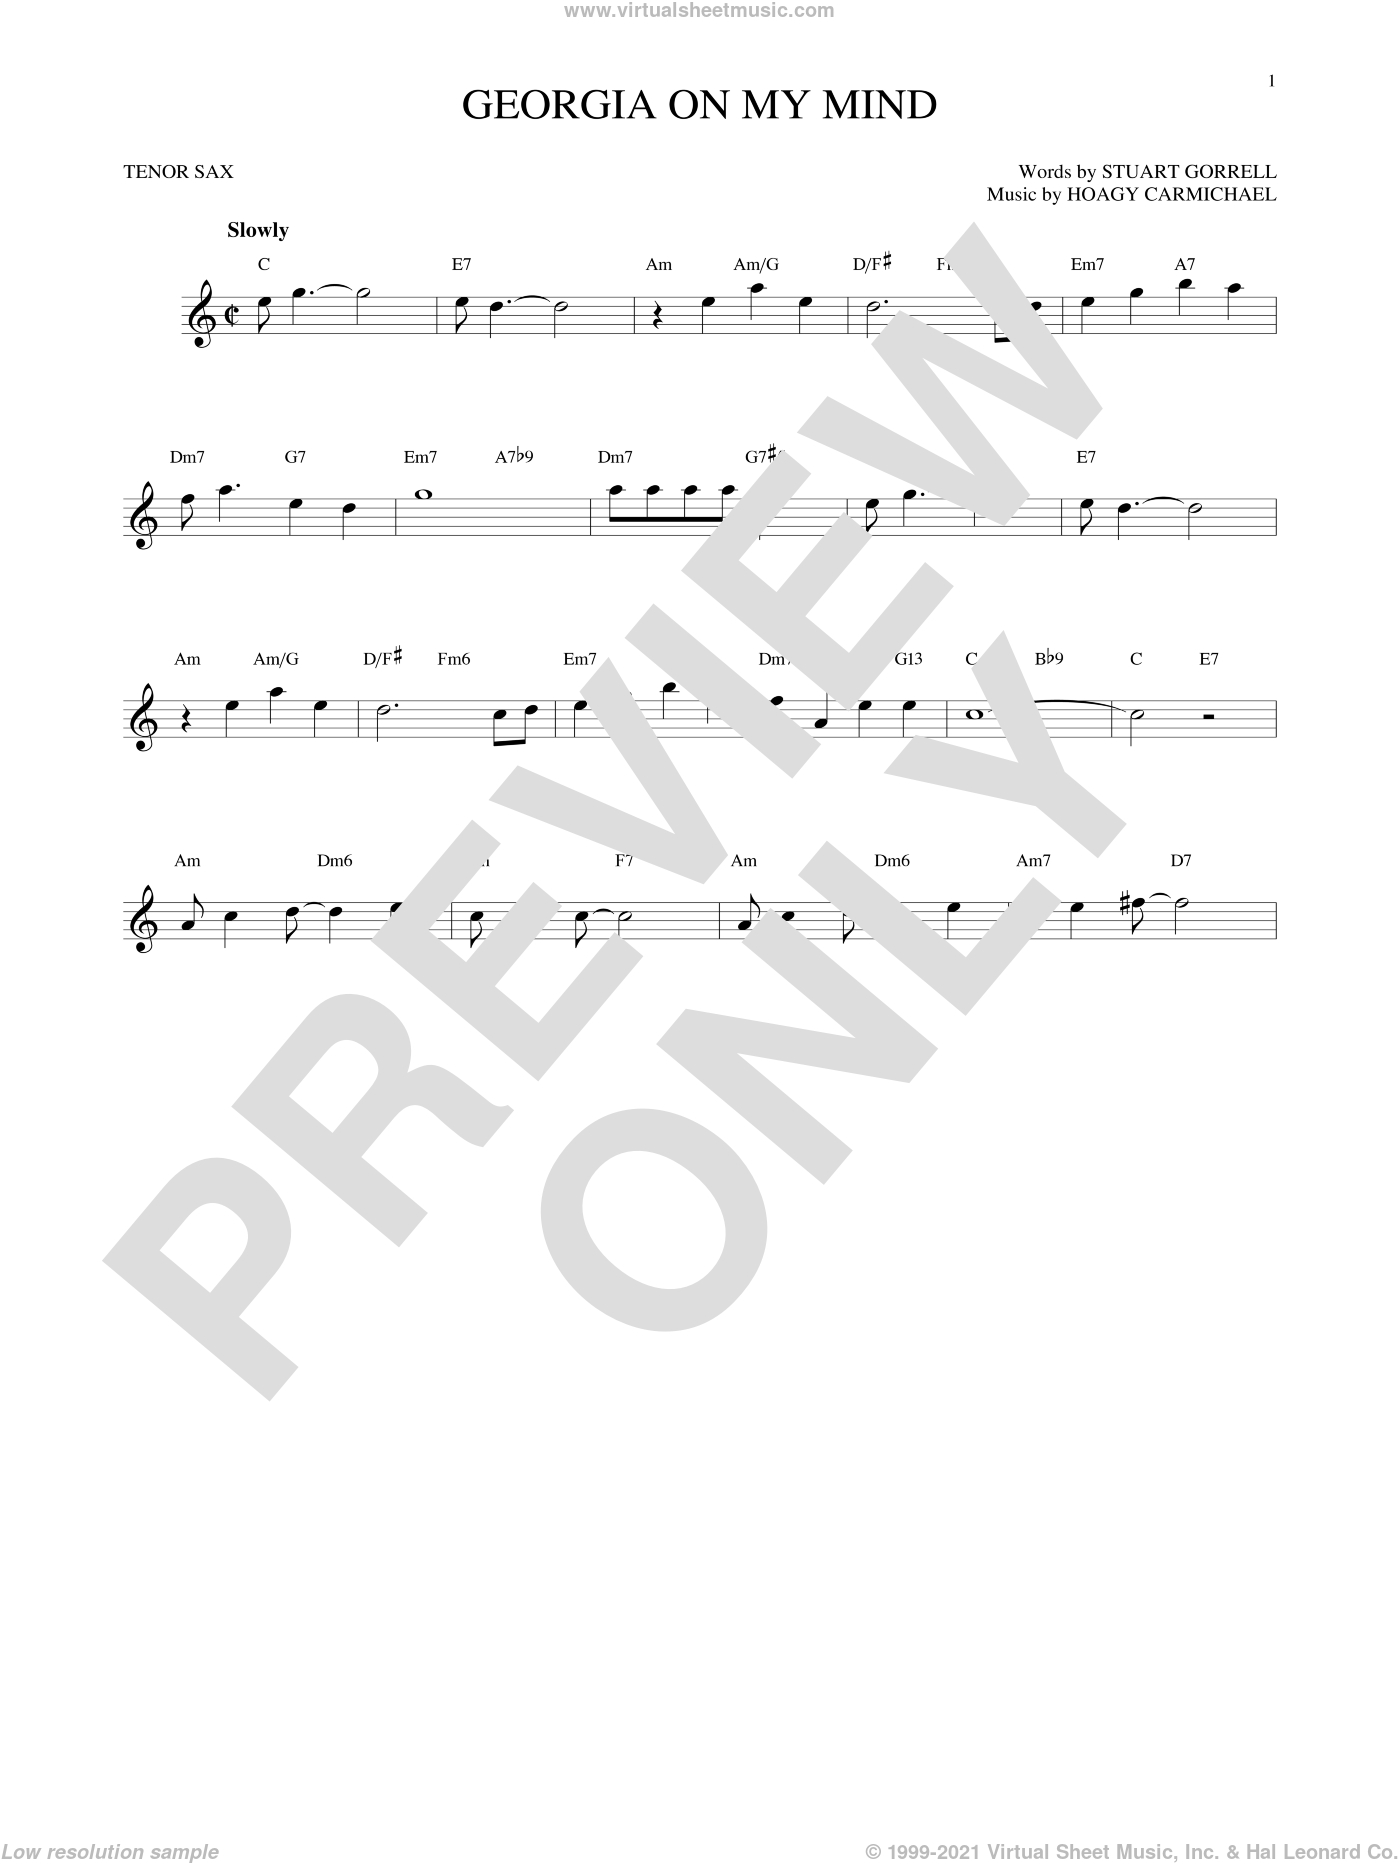 Georgia On My Mind sheet music for tenor saxophone solo by Hoagy Carmichael, Ray Charles, Willie Nelson and Stuart Gorrell. Score Image Preview.